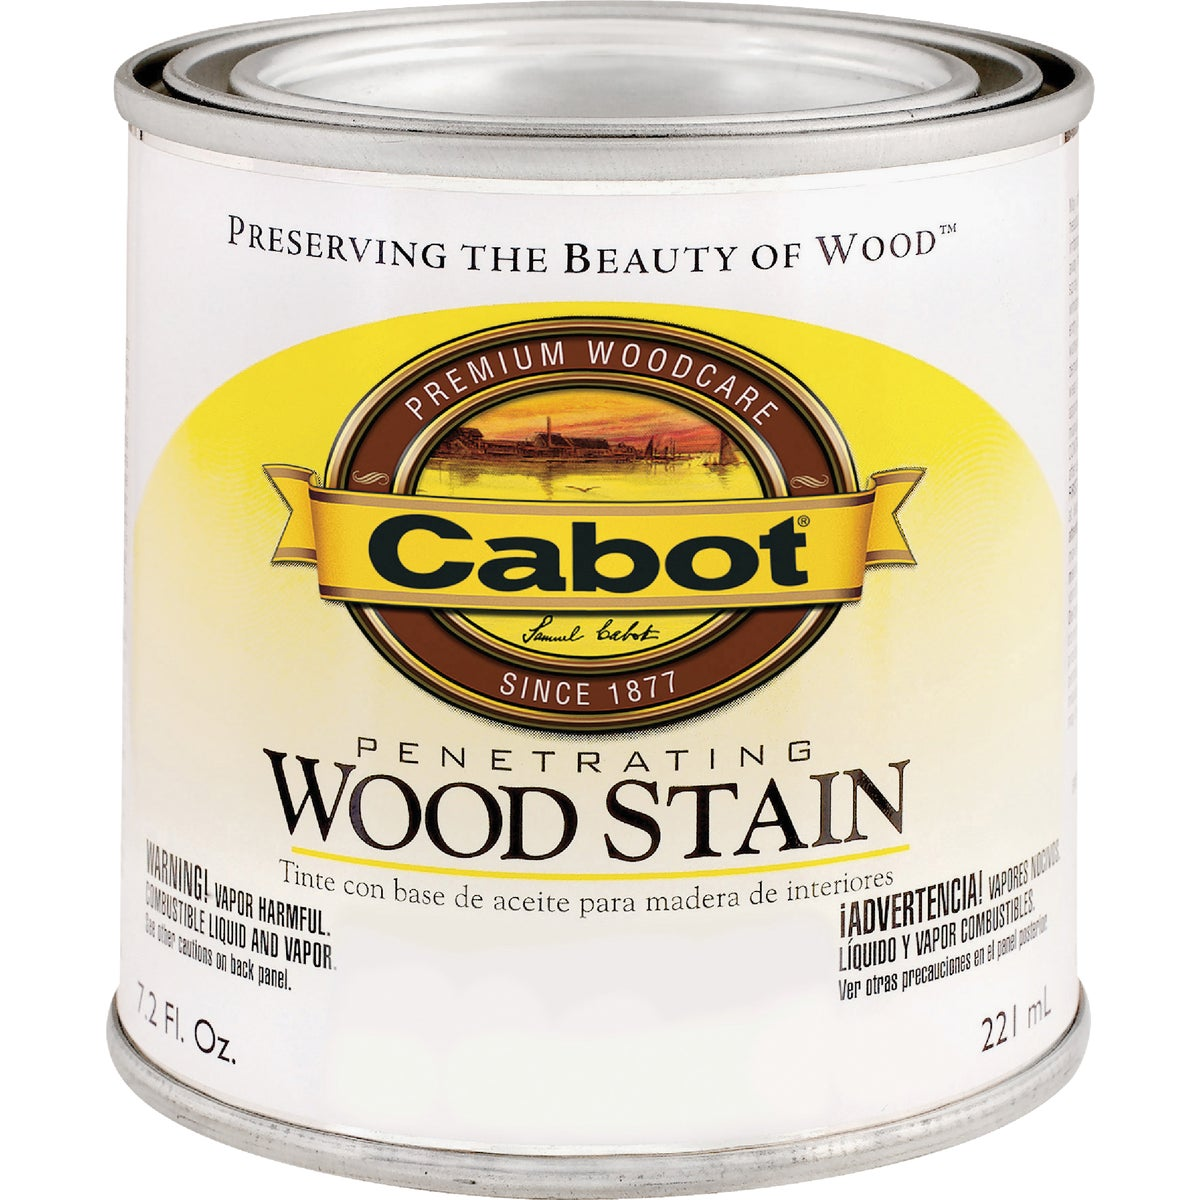 INT NATURAL WOOD STAIN - 144.0008120.003 by Valspar Corp